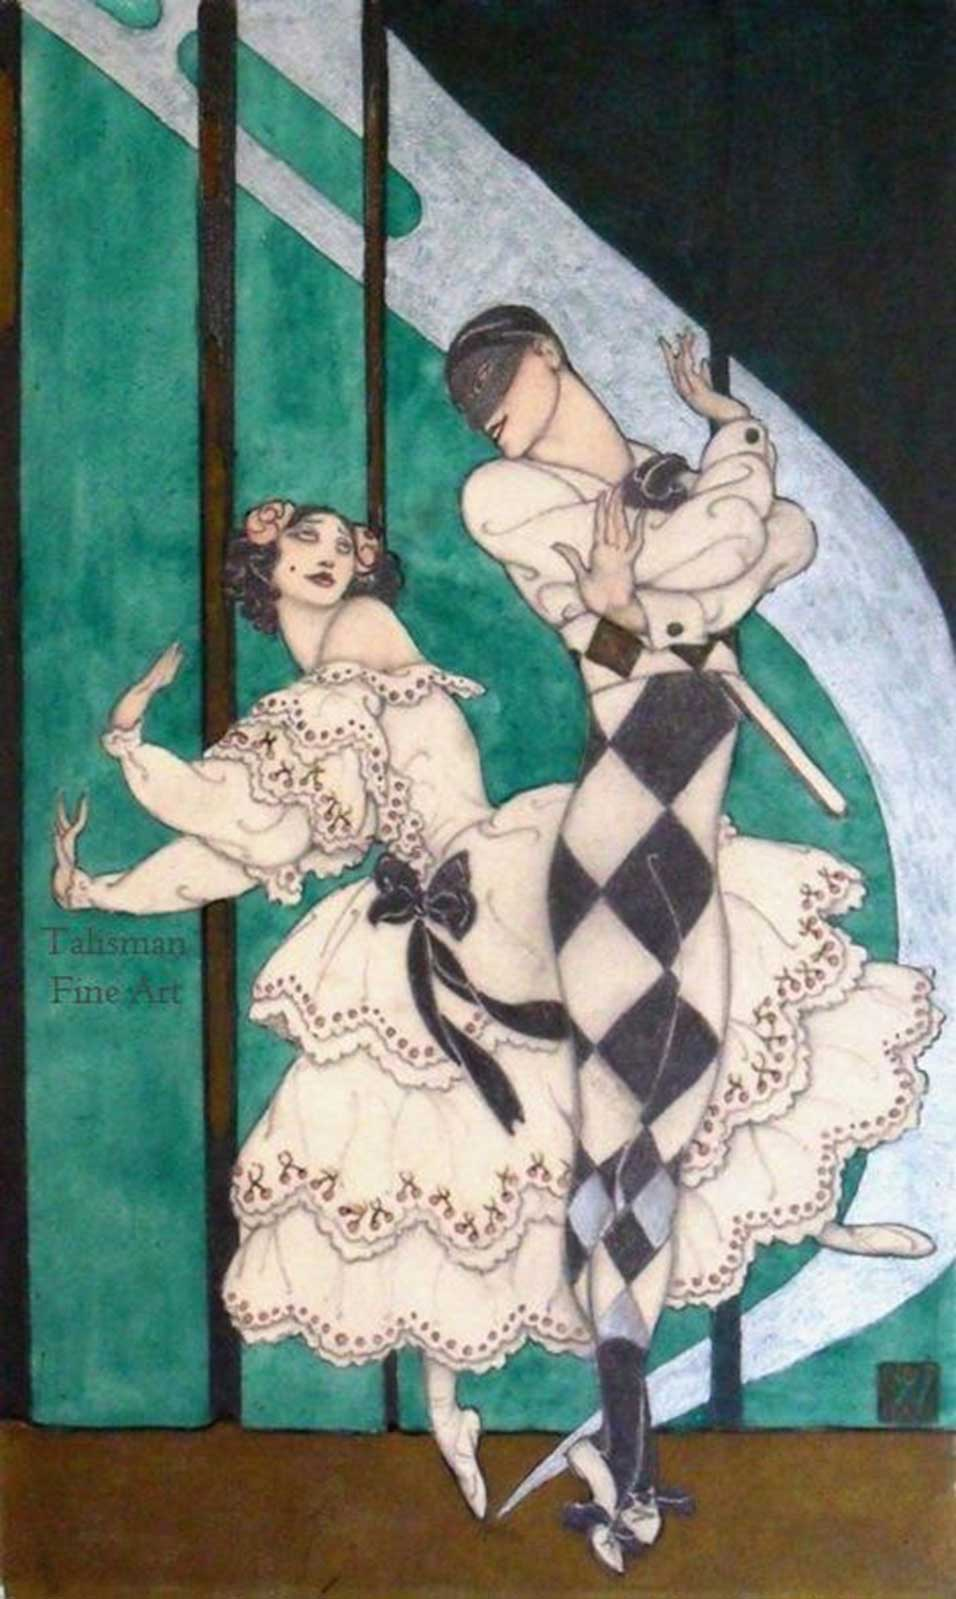 Talusman Fine Art Vera Willoughby - A ballet scene with two dancers